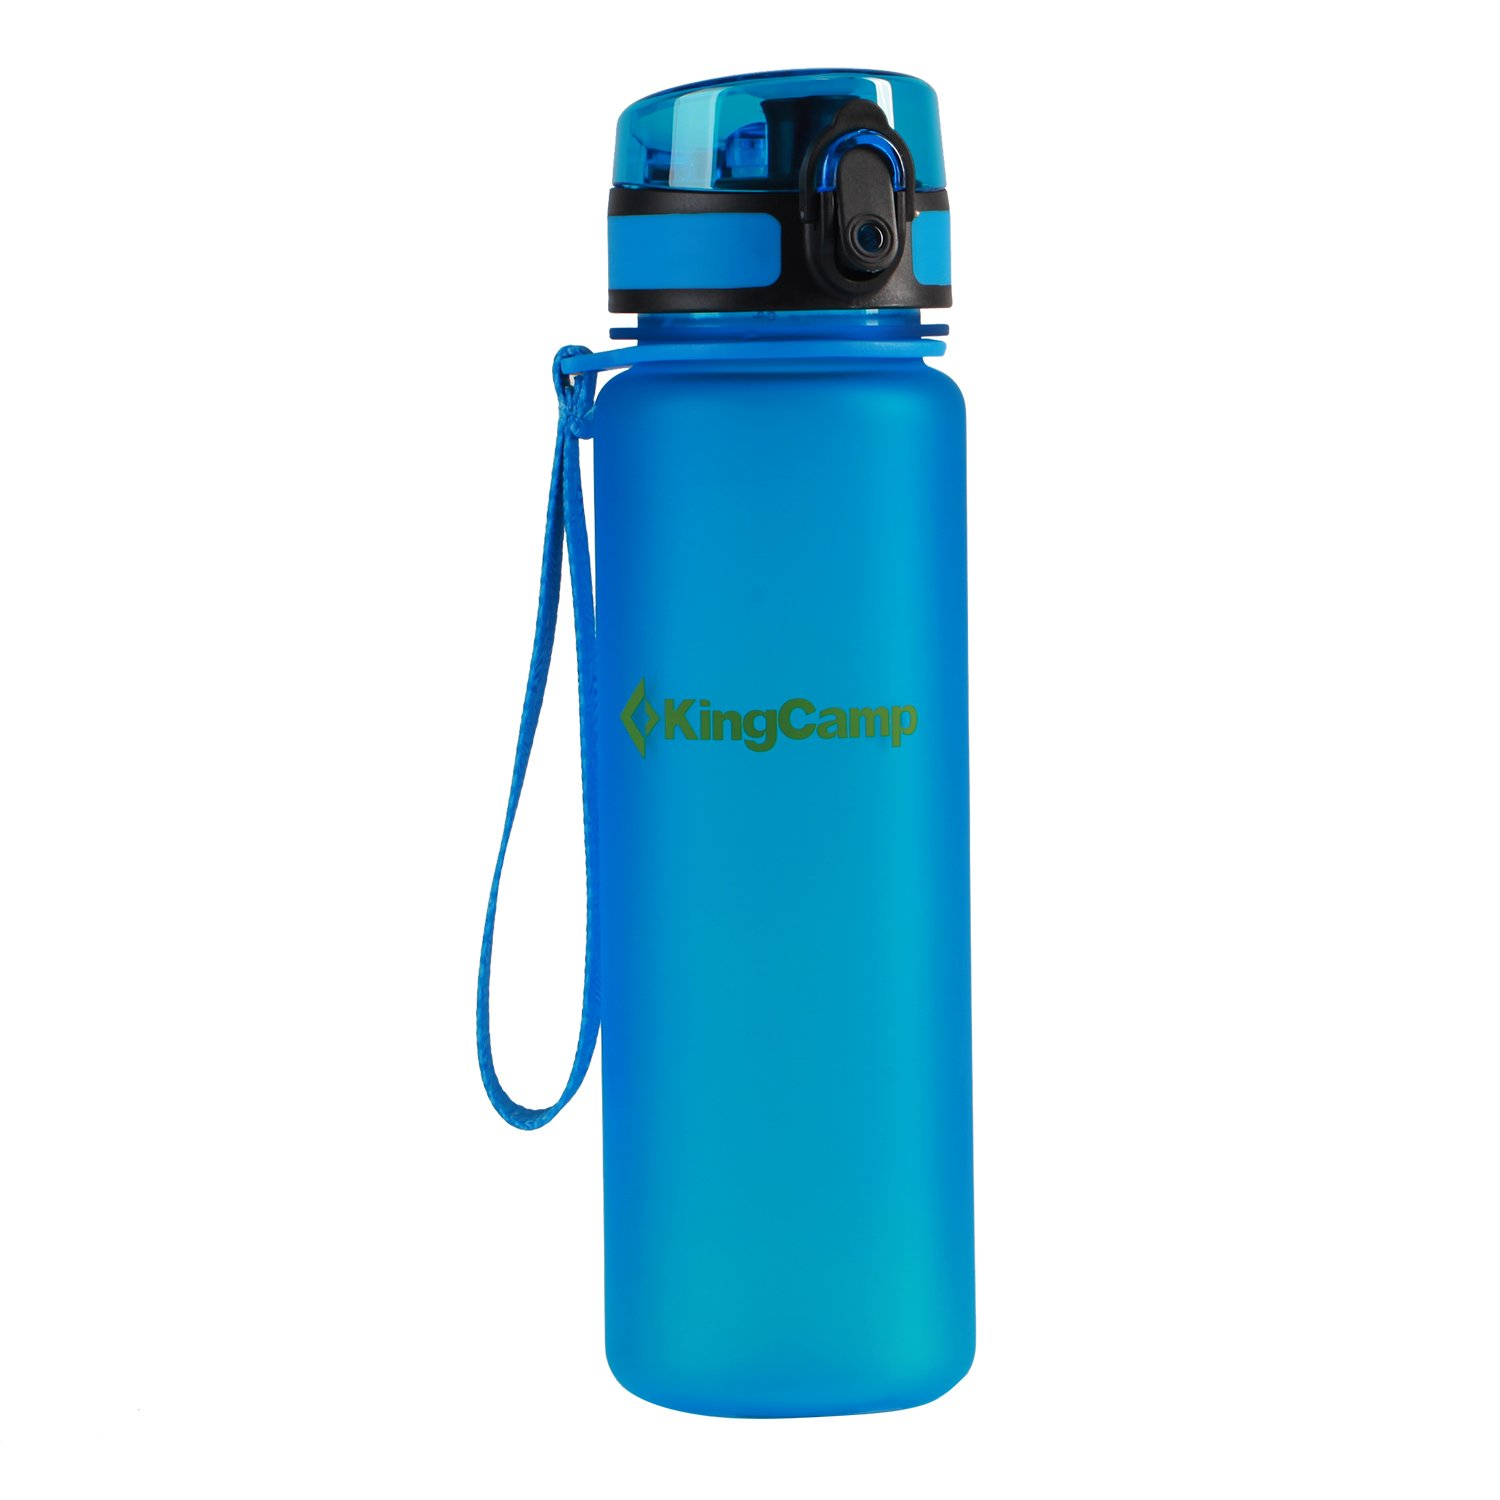 KingCamp 17.7oz / 500ml TRITAN Royal Blue Wide Mouth Sports Water Bottle